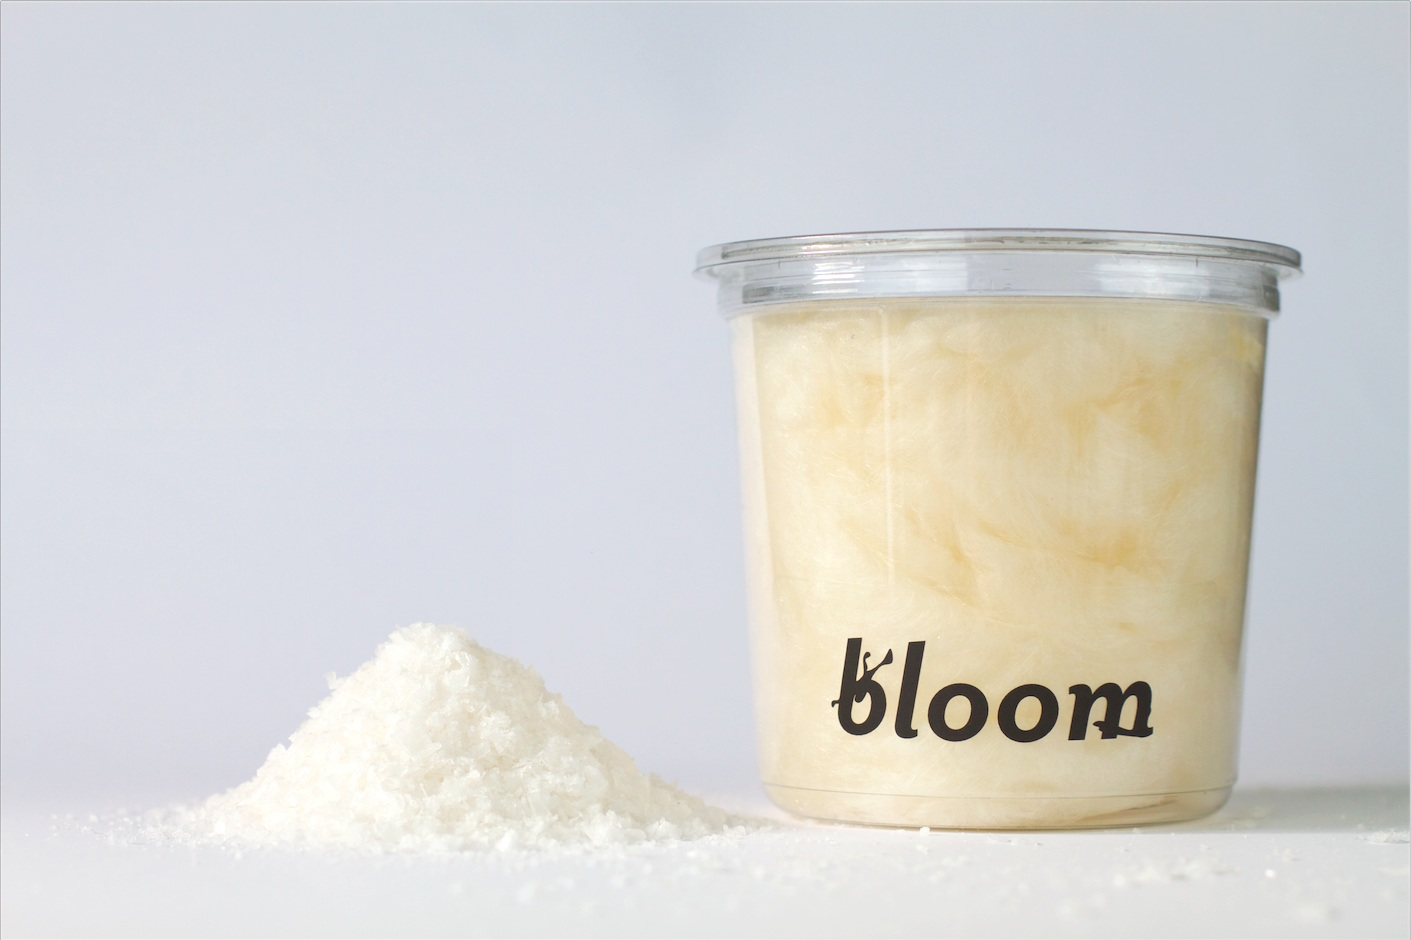 bloom_candyfloss_salted_butter_caramel_sea_salt_organic_ingredients_our_product_picture_number_4.png